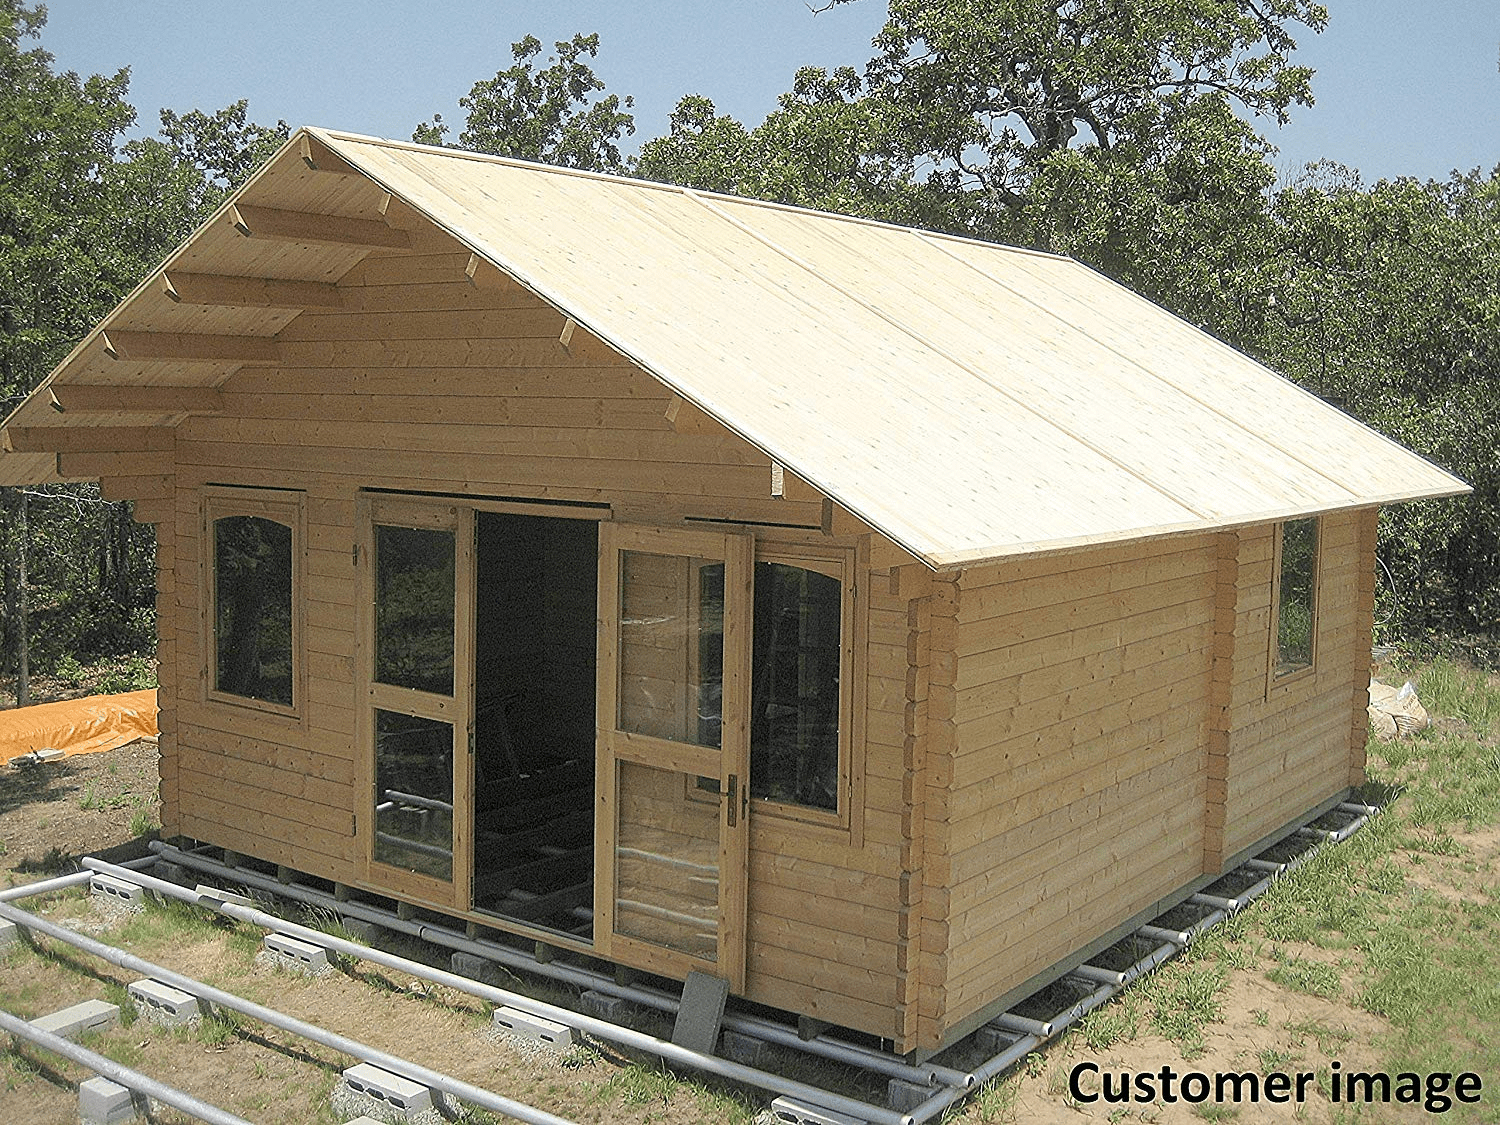 Amazon Sells Diy Tiny Home Kits That Take Only 2 Days To